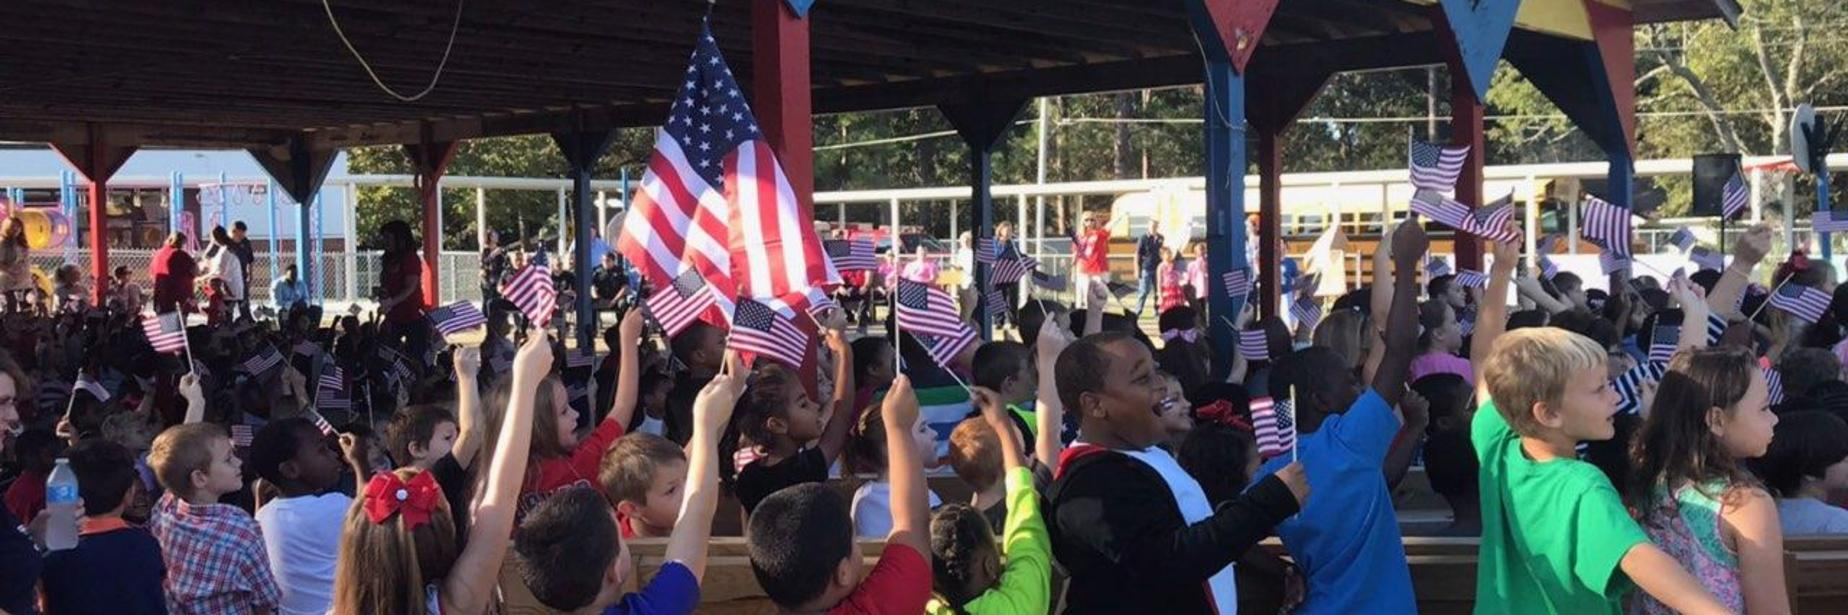 golson students waving american flags